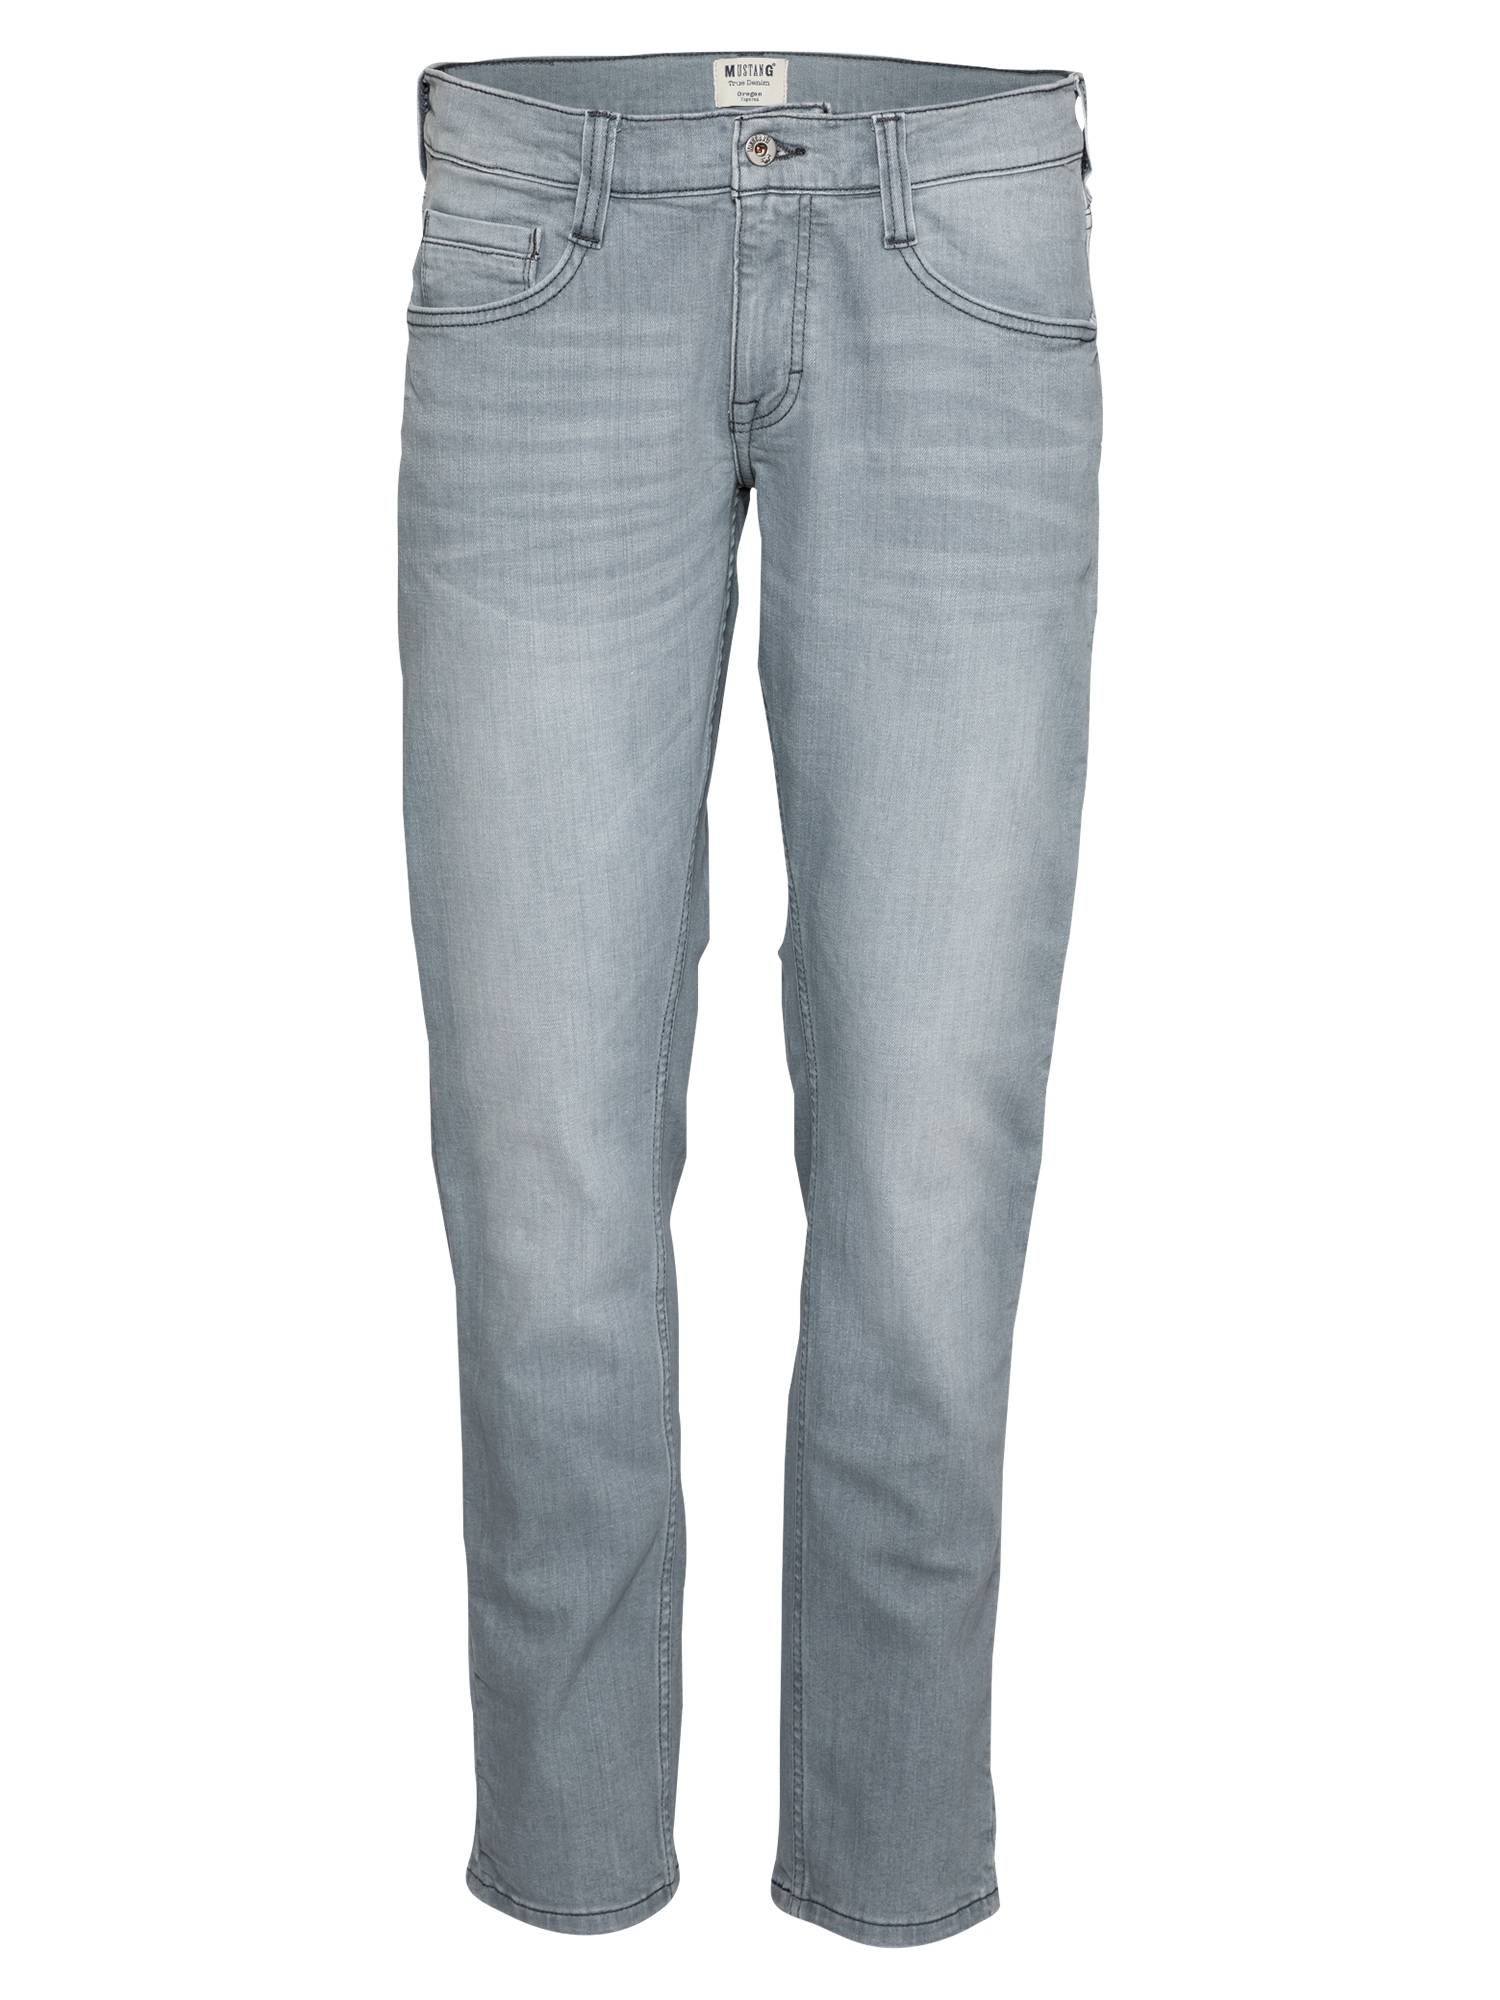 MUSTANG Jean 'Oregon'  - Gris - Taille: 34/32 - male